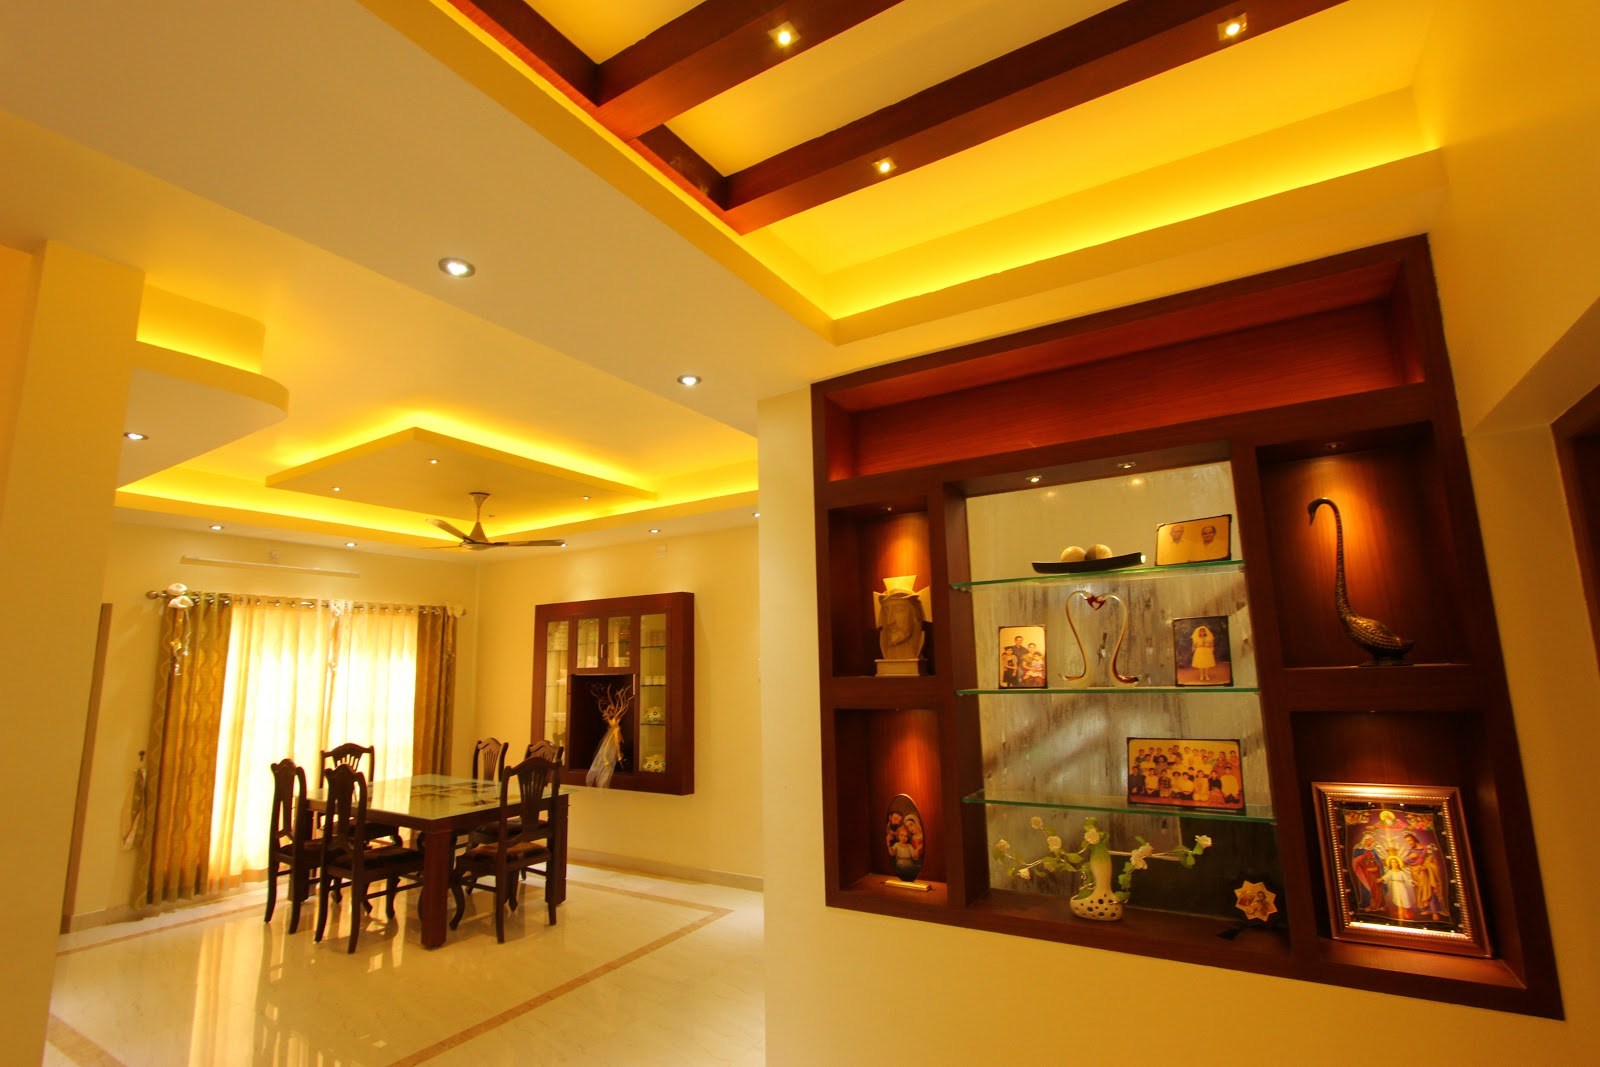 Shilpakala interiors award winning home interior design for Bathroom interior design kerala